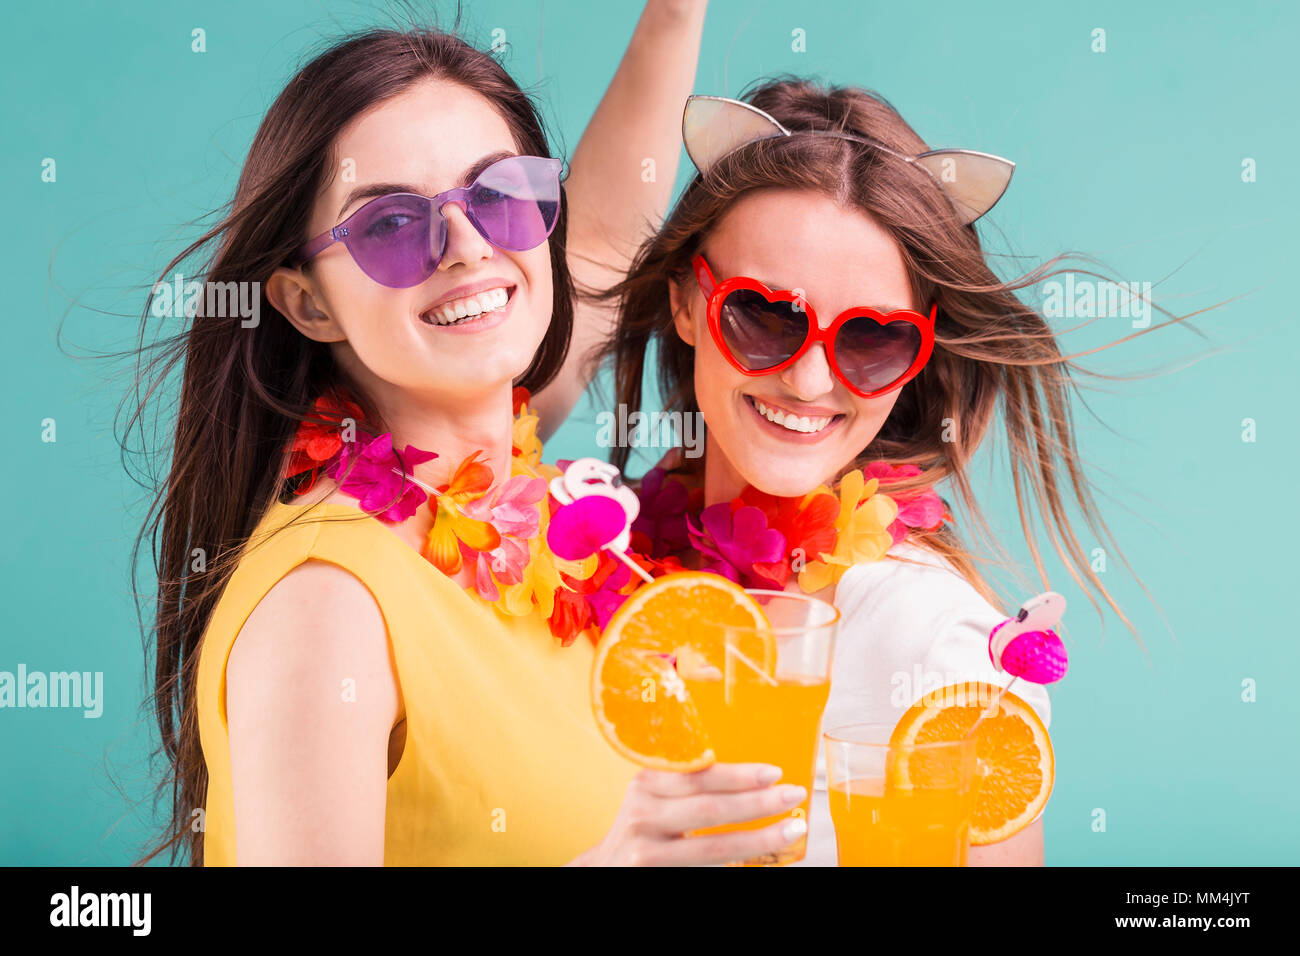 Two beautiful smiling caucasian girls wears t-shirts with lei and sunglasses hold orange cocktails on blue background - Stock Image